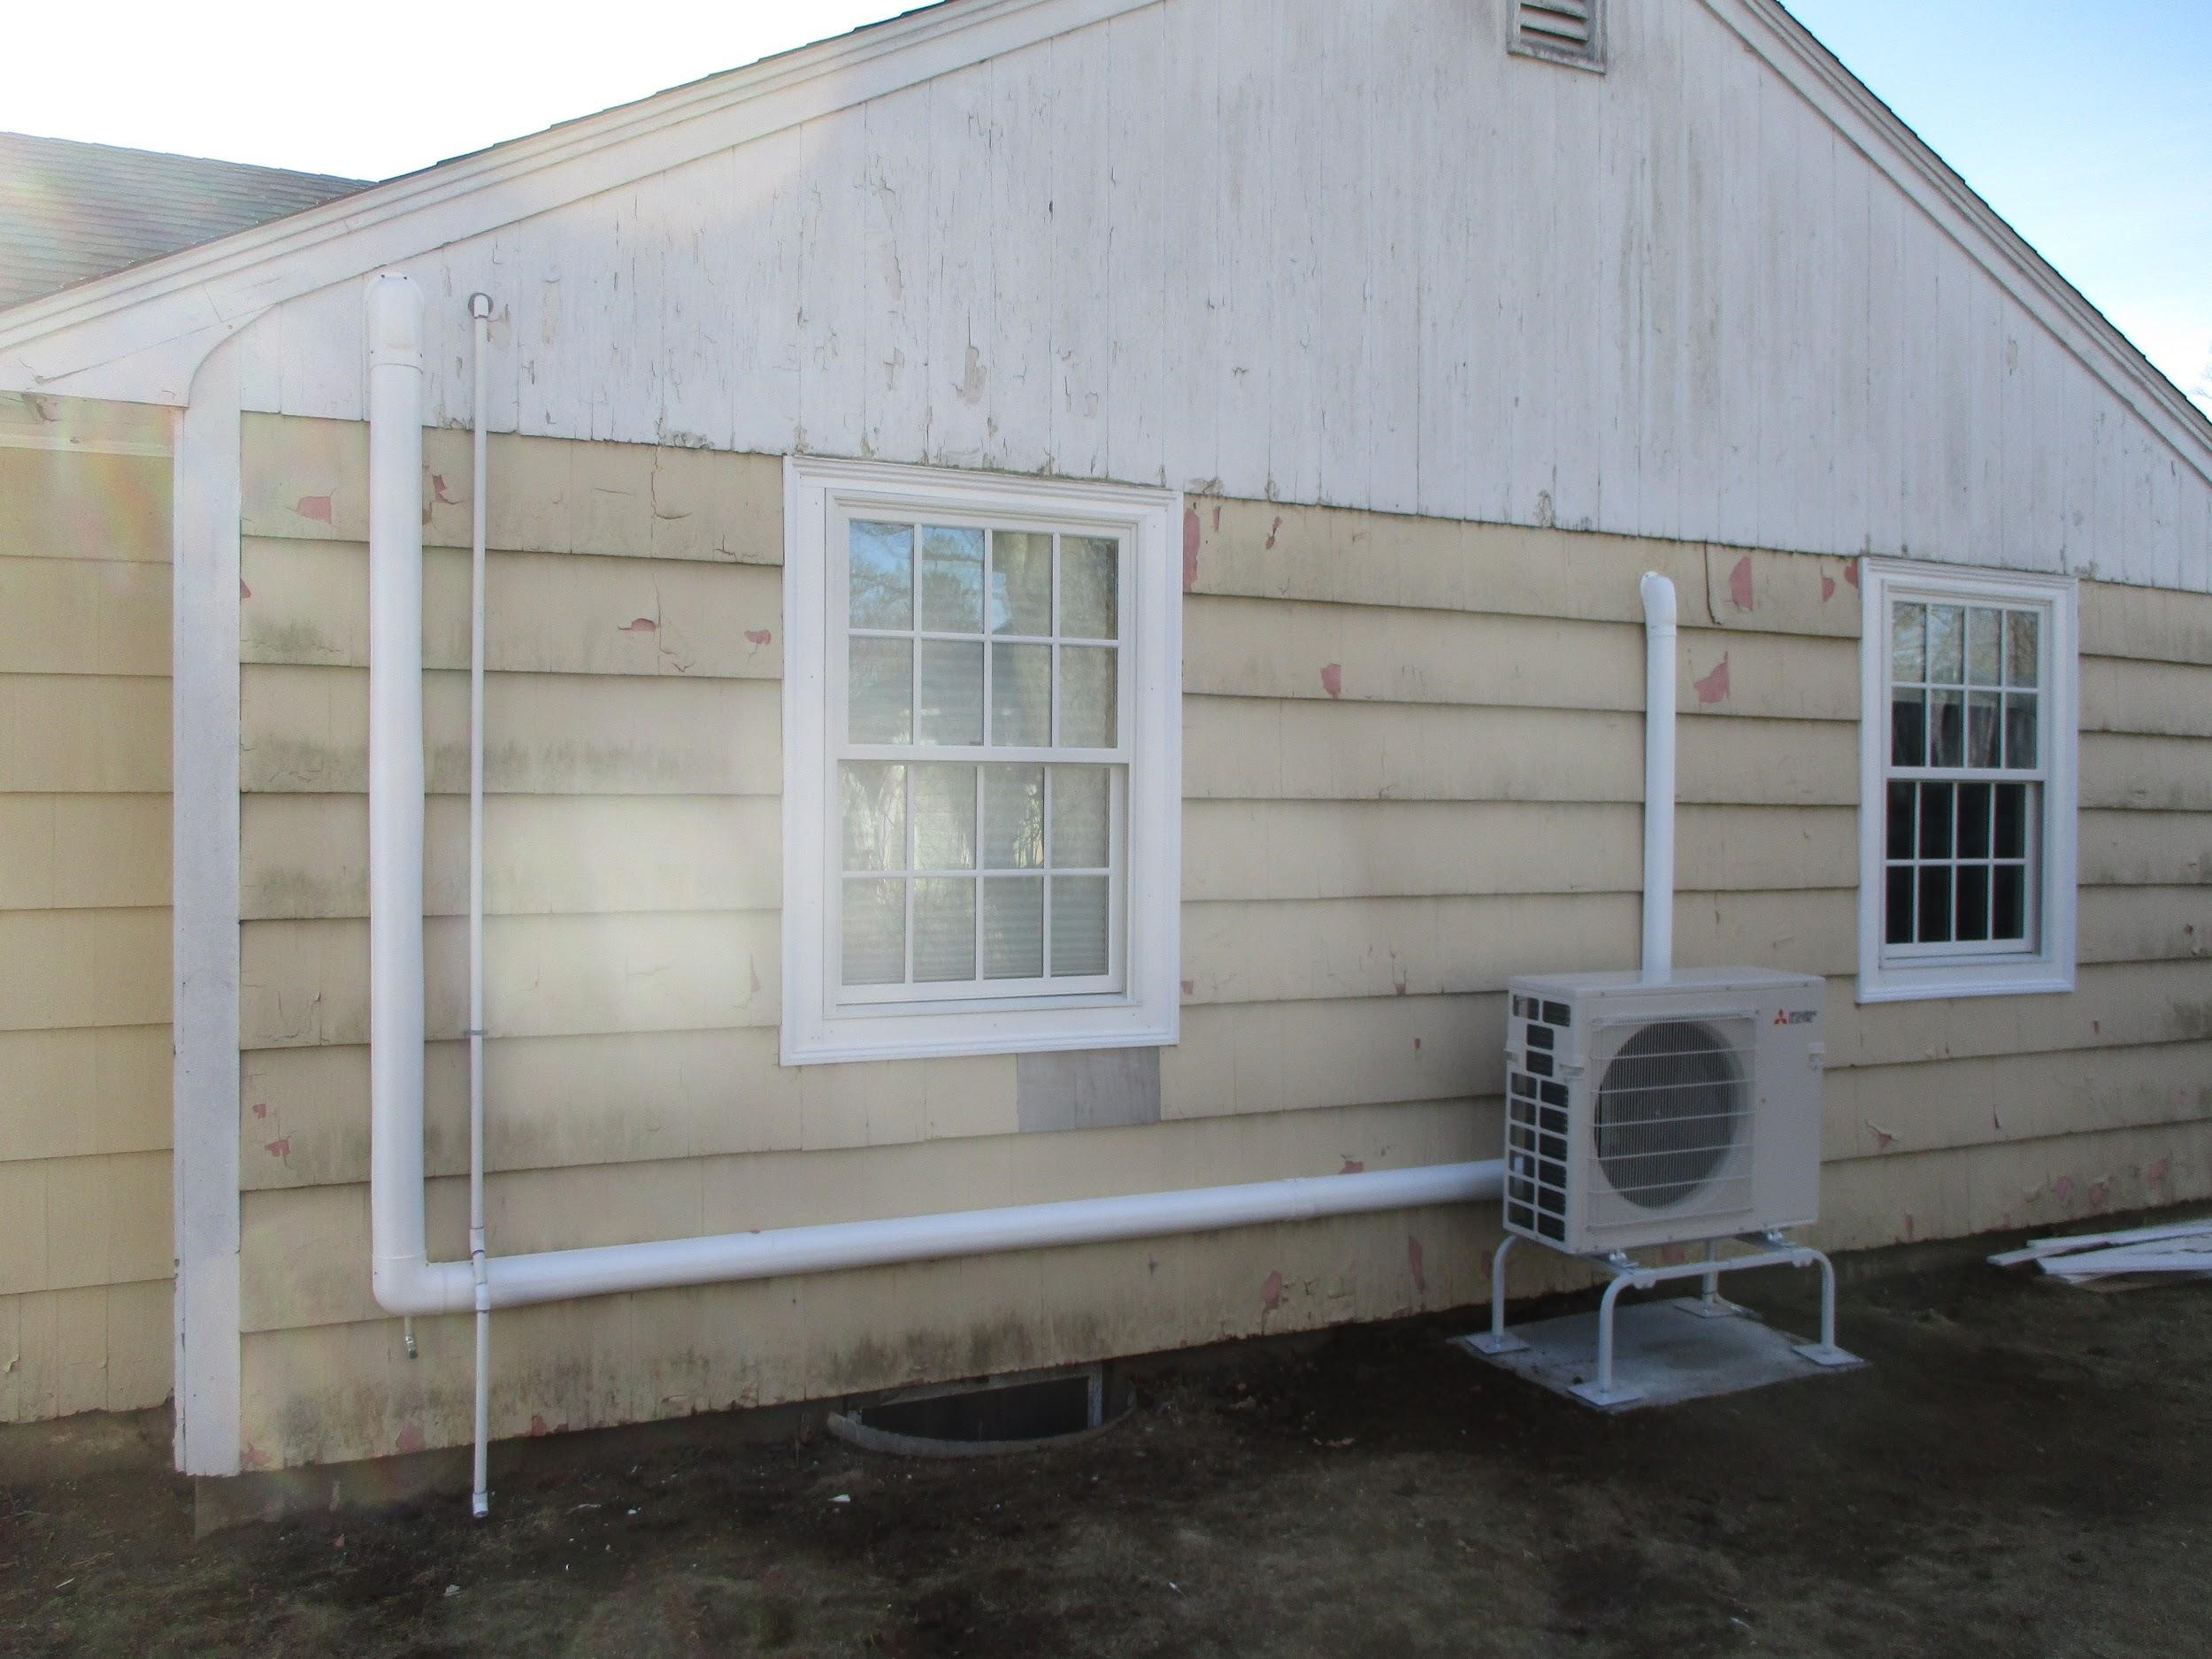 Outdoor condenser and heat pump installed for Mitsubishi ductless system in Hamilton, MA.